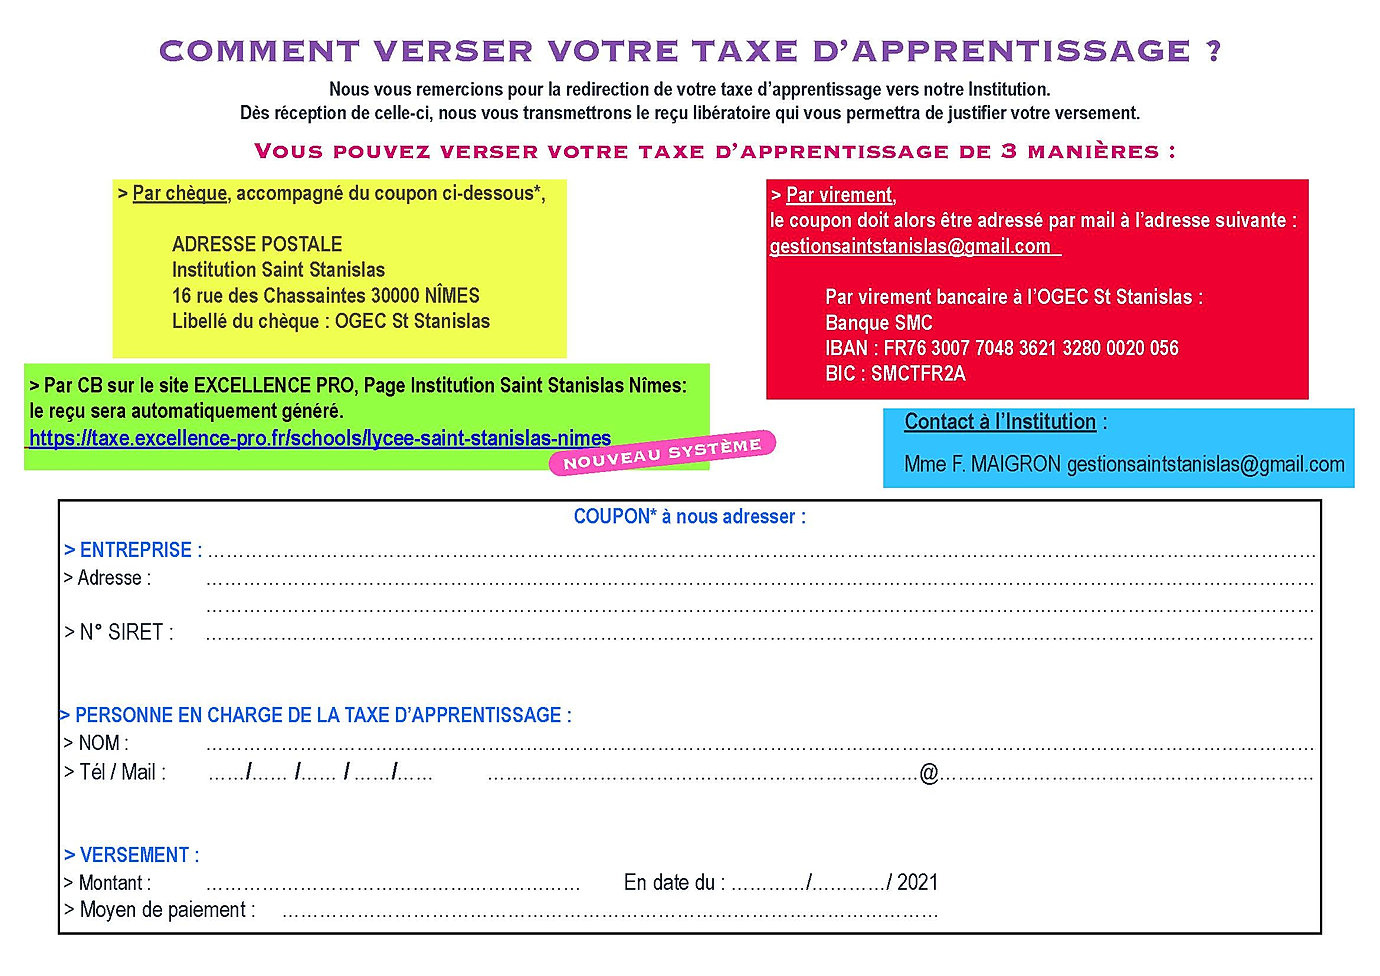 taxe apprentissage site internet_Page_1.